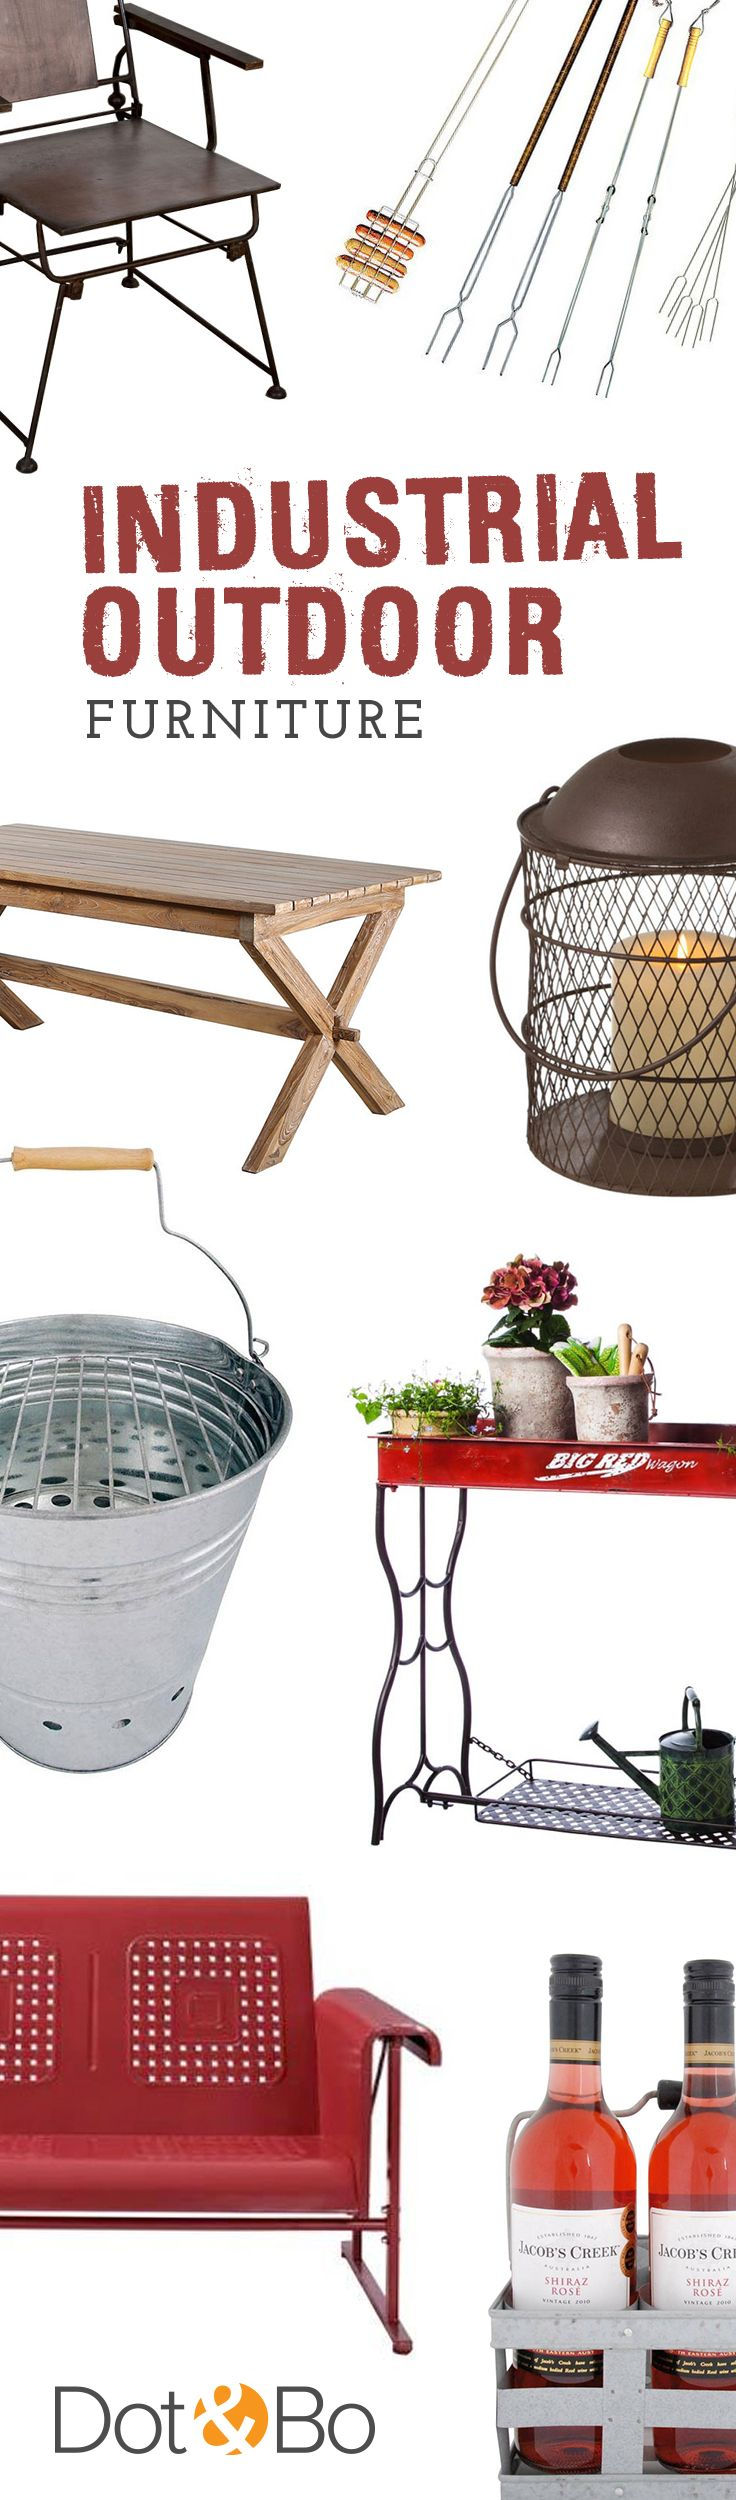 Industrial Outdoor Furniture & Décor | Shop Now at dotandbo.com